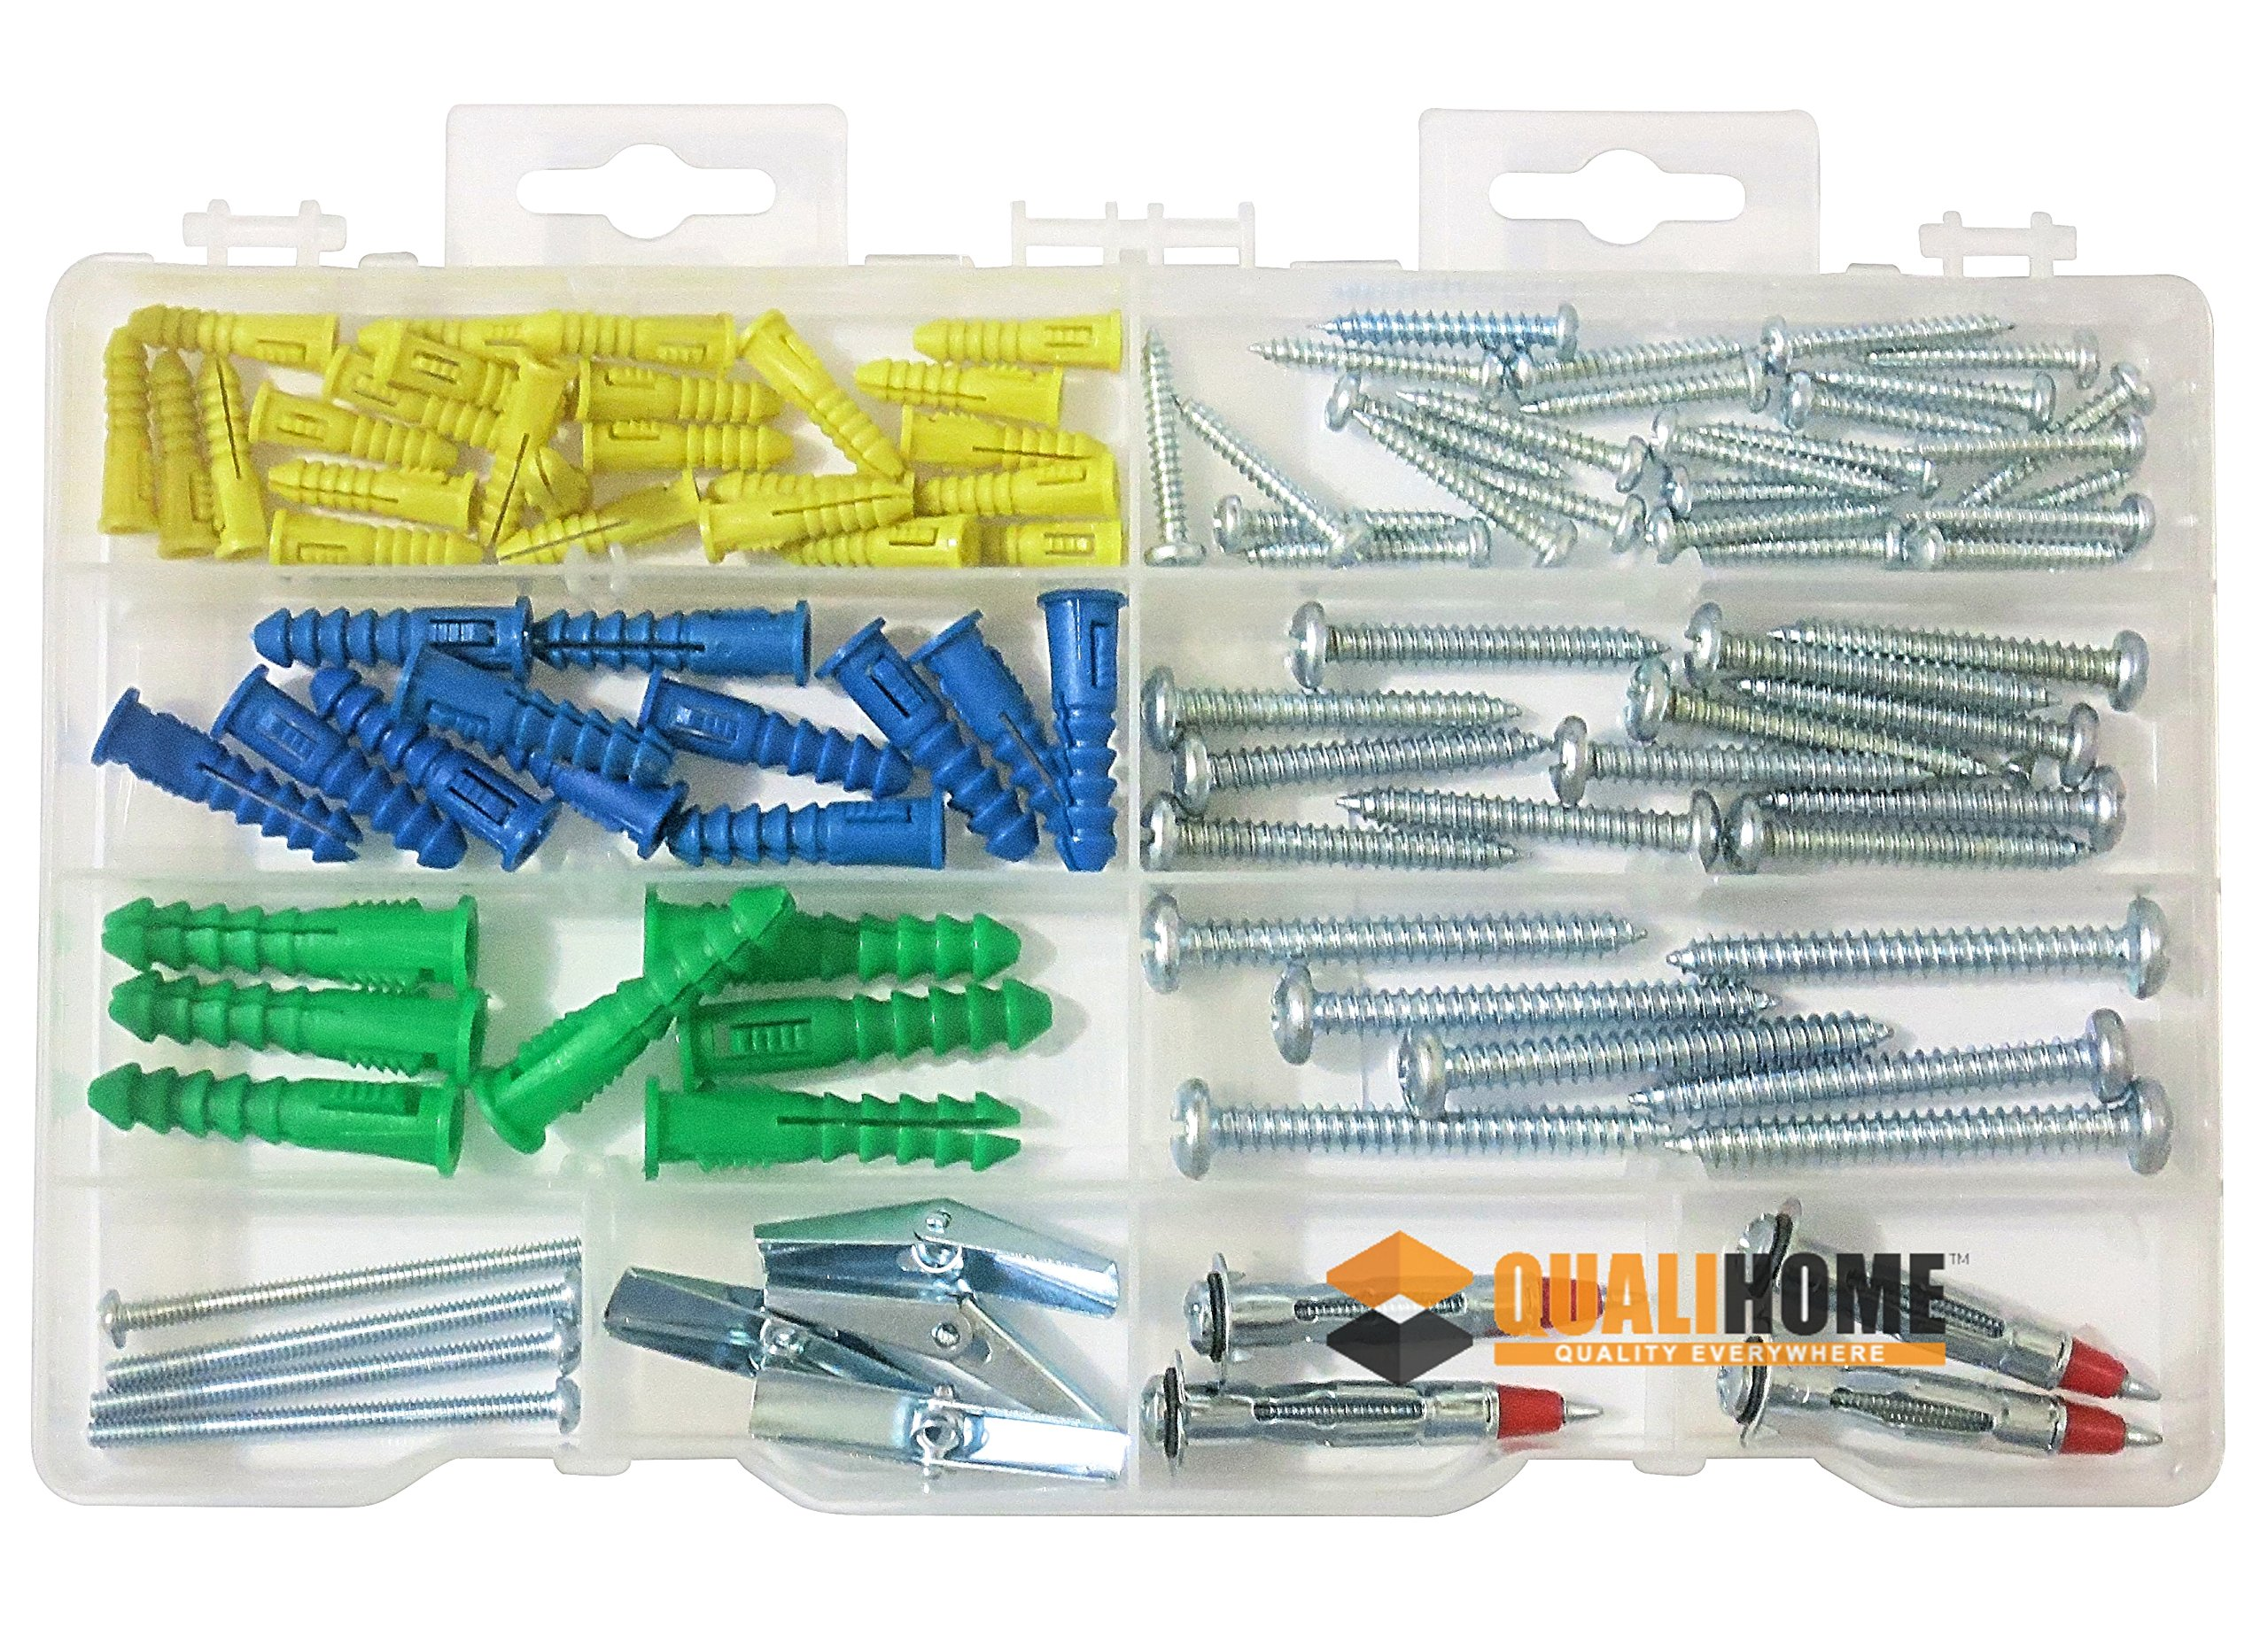 Qualihome Drywall and Hollow-wall Anchor Assortment Kit, Anchors, Molly Bolts, Screws, and Toggle Bolts Wings